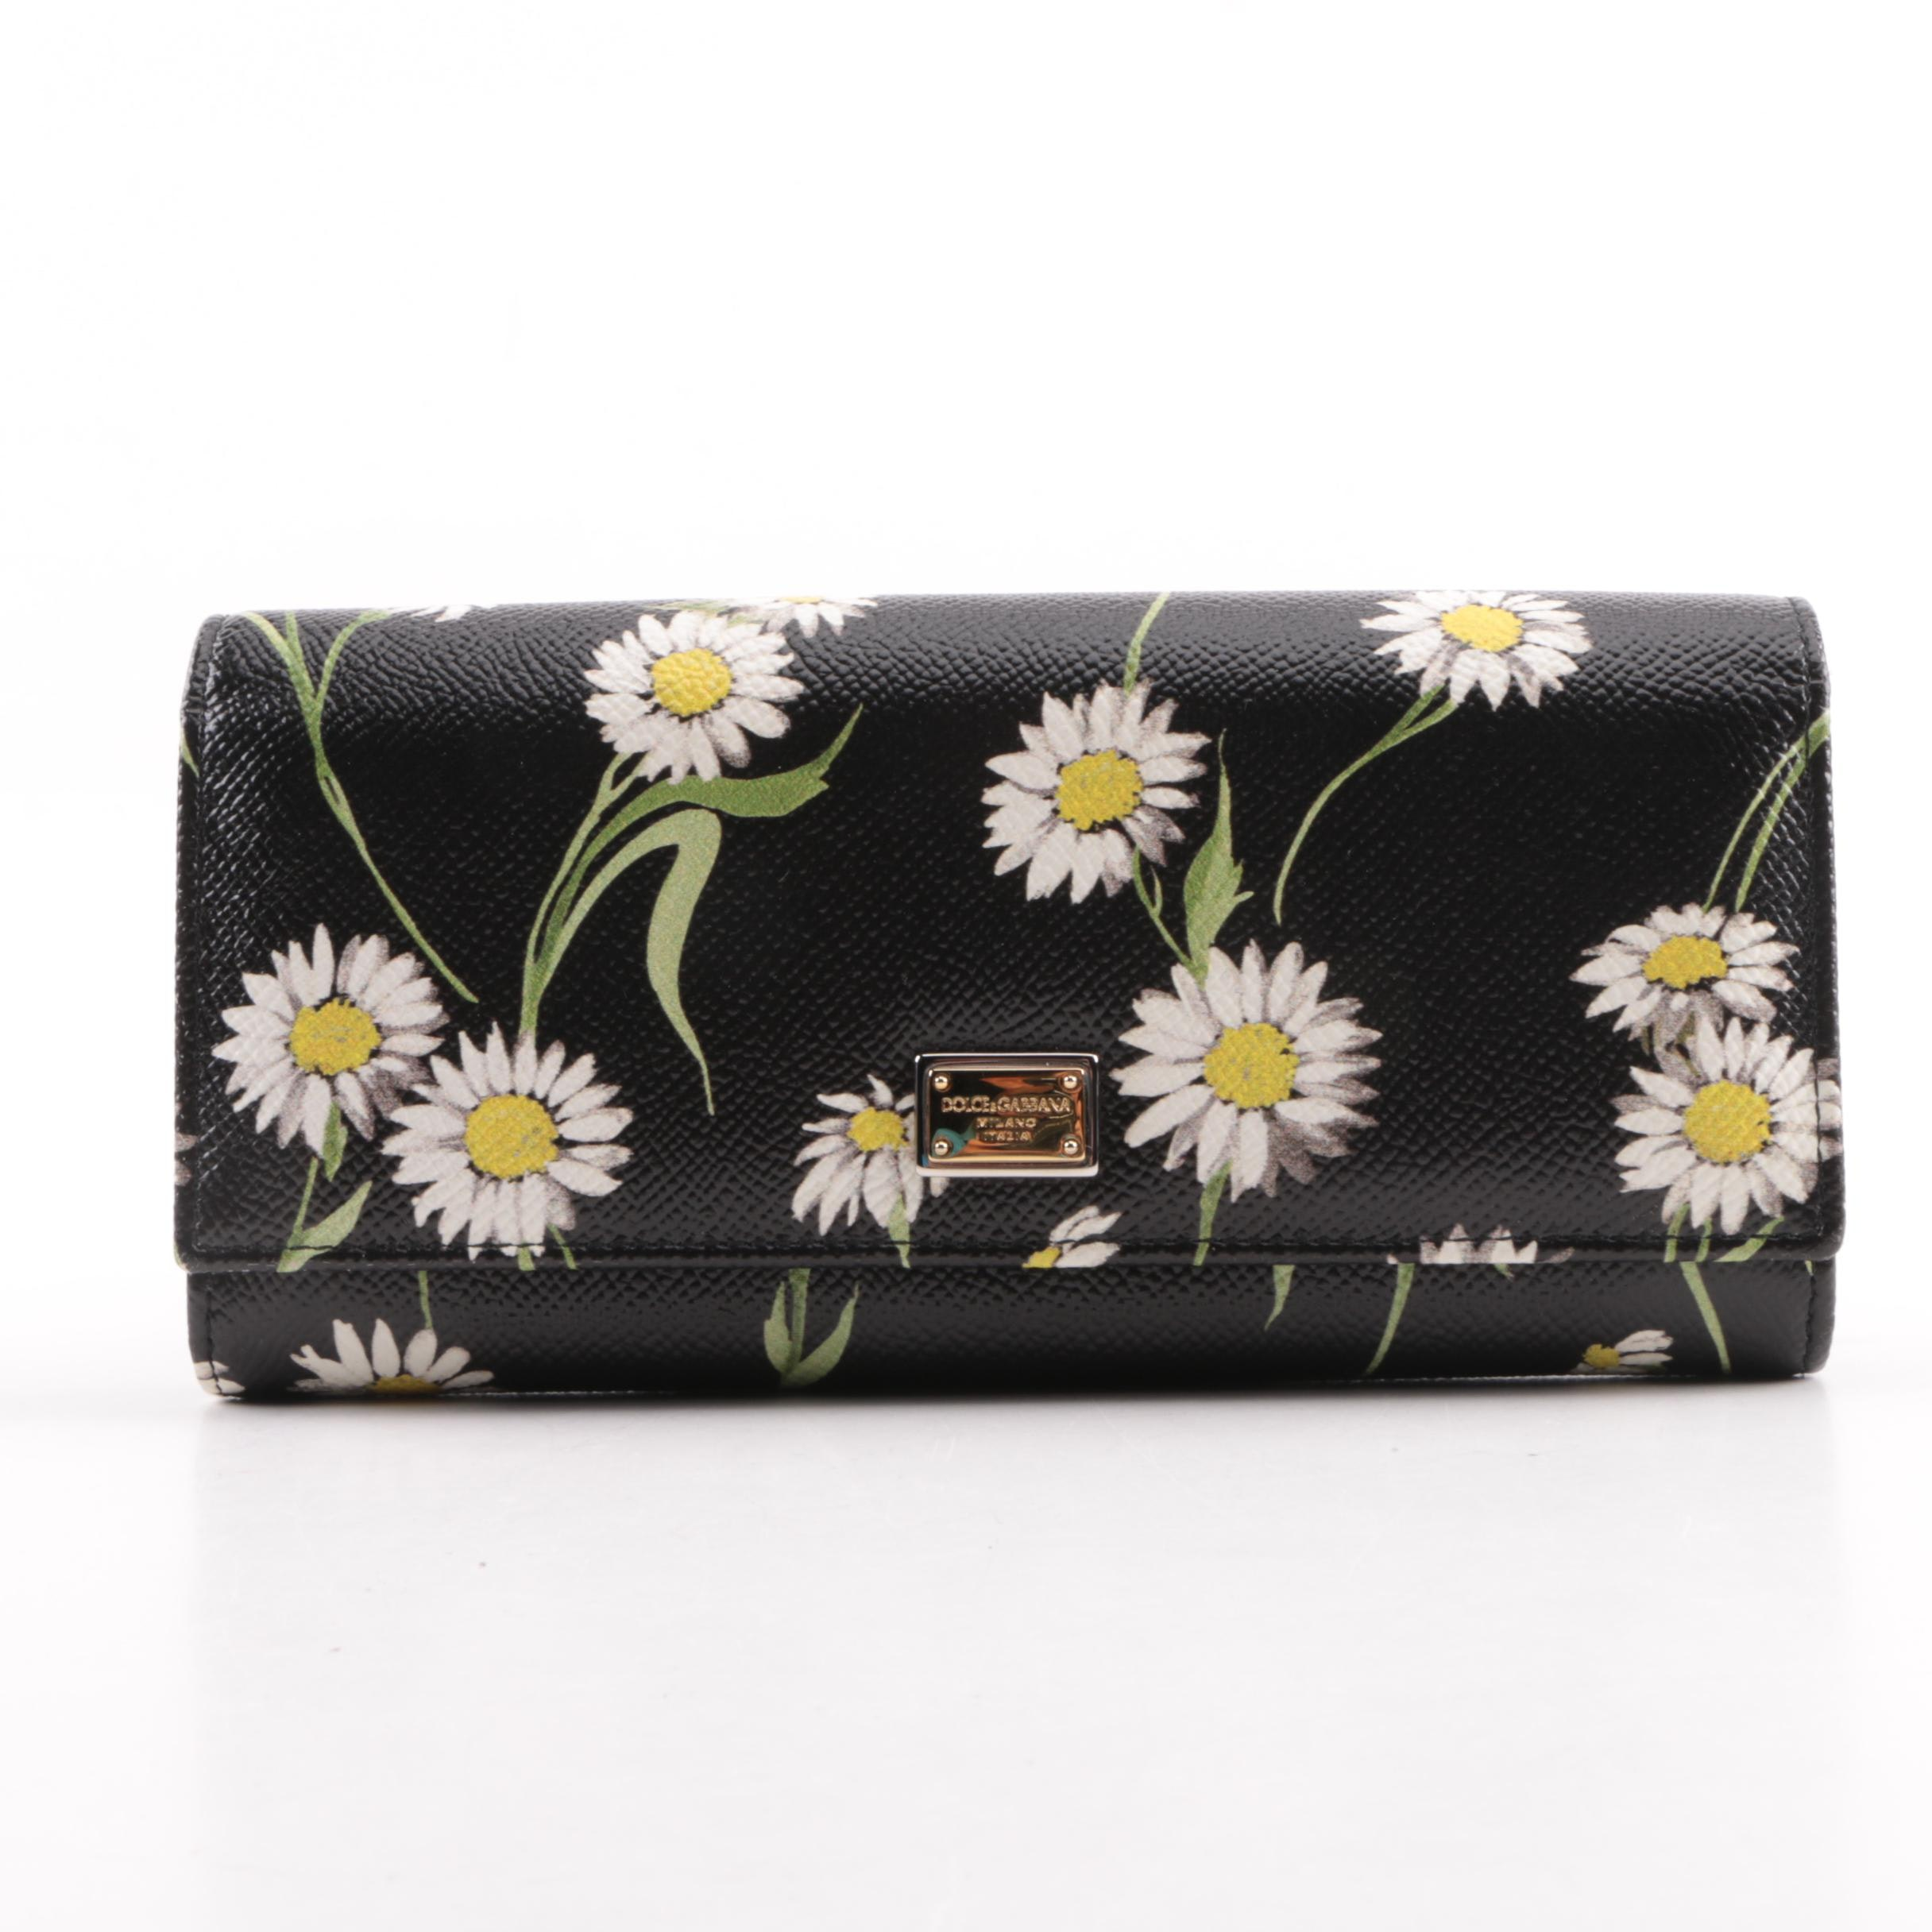 Dolce & Gabbana Dauphine Daisy Print Pebbled Leather Wallet